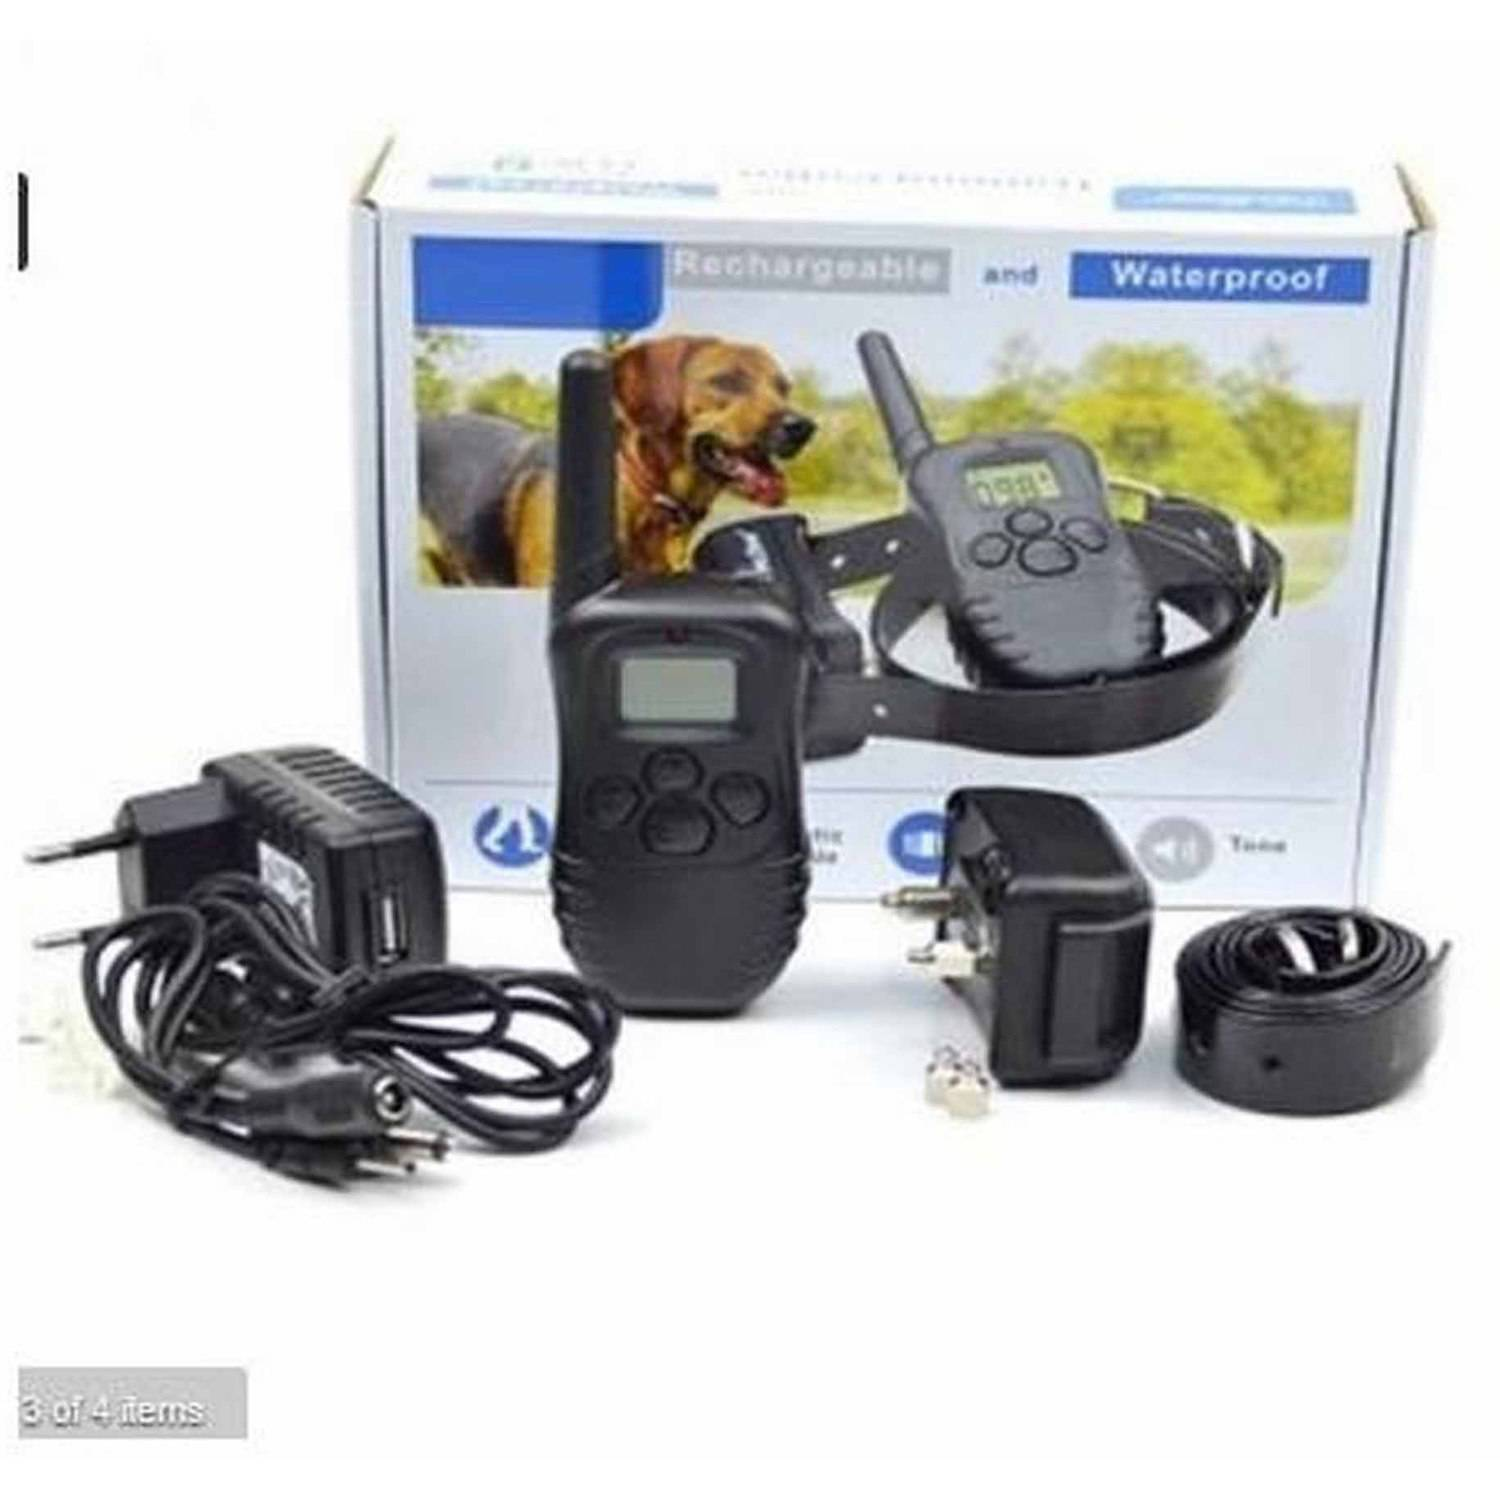 ALEKO TS-TC01 Rechargeable and Waterproof Dog Collar Training Collar